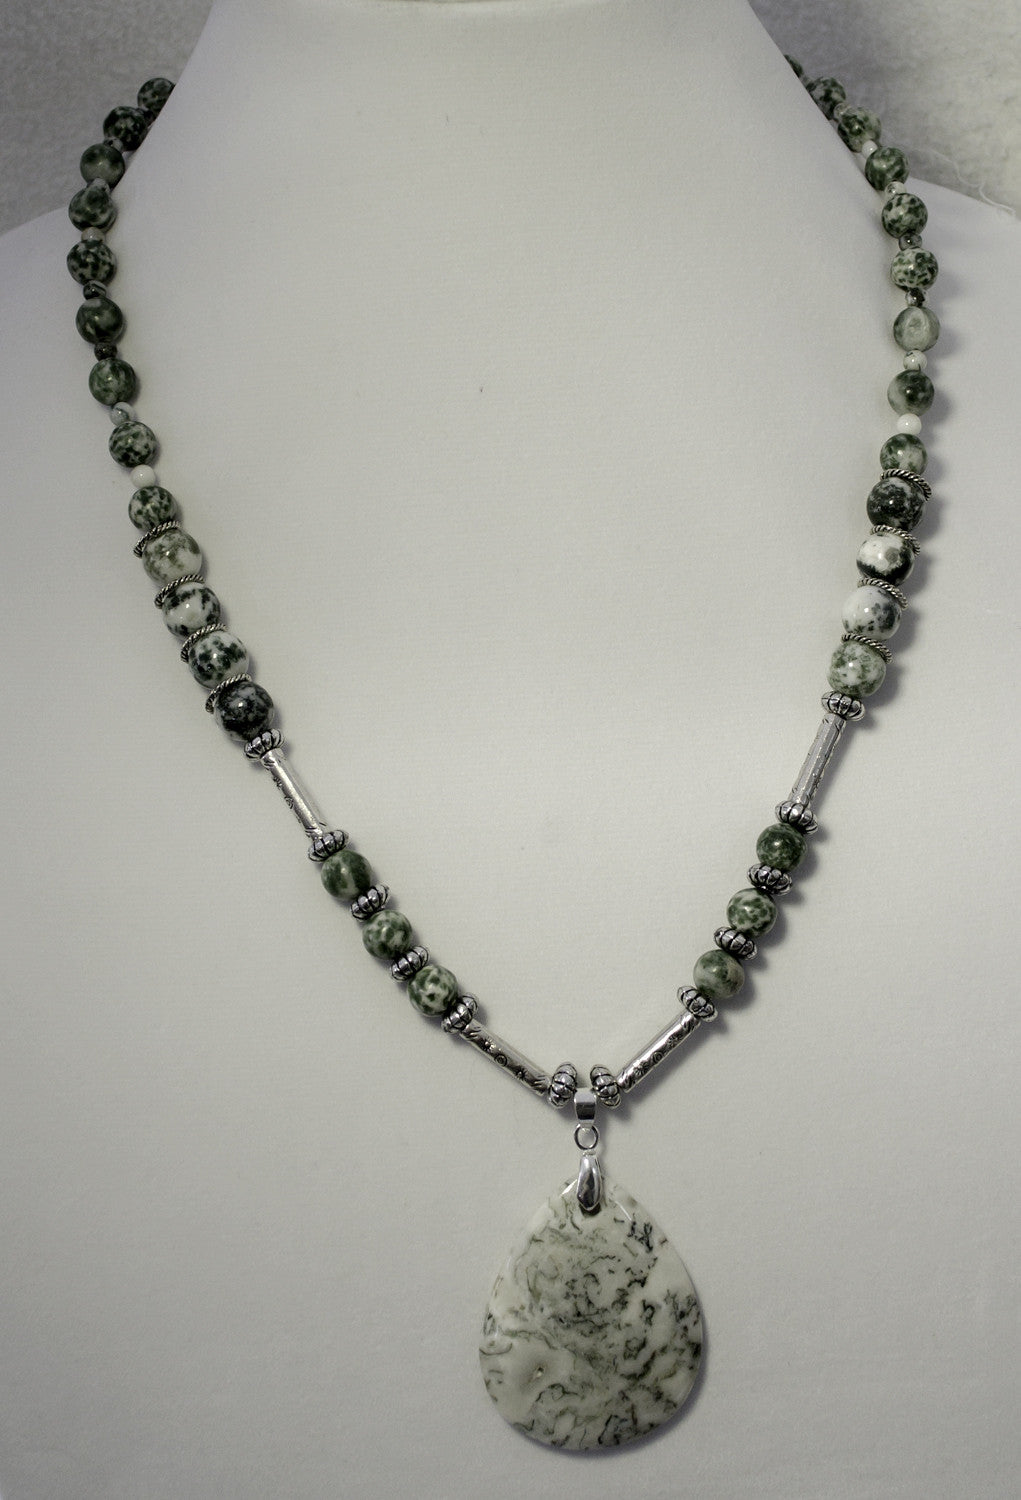 Tree agate pendant and beads, Tibetan silver stamped tubes